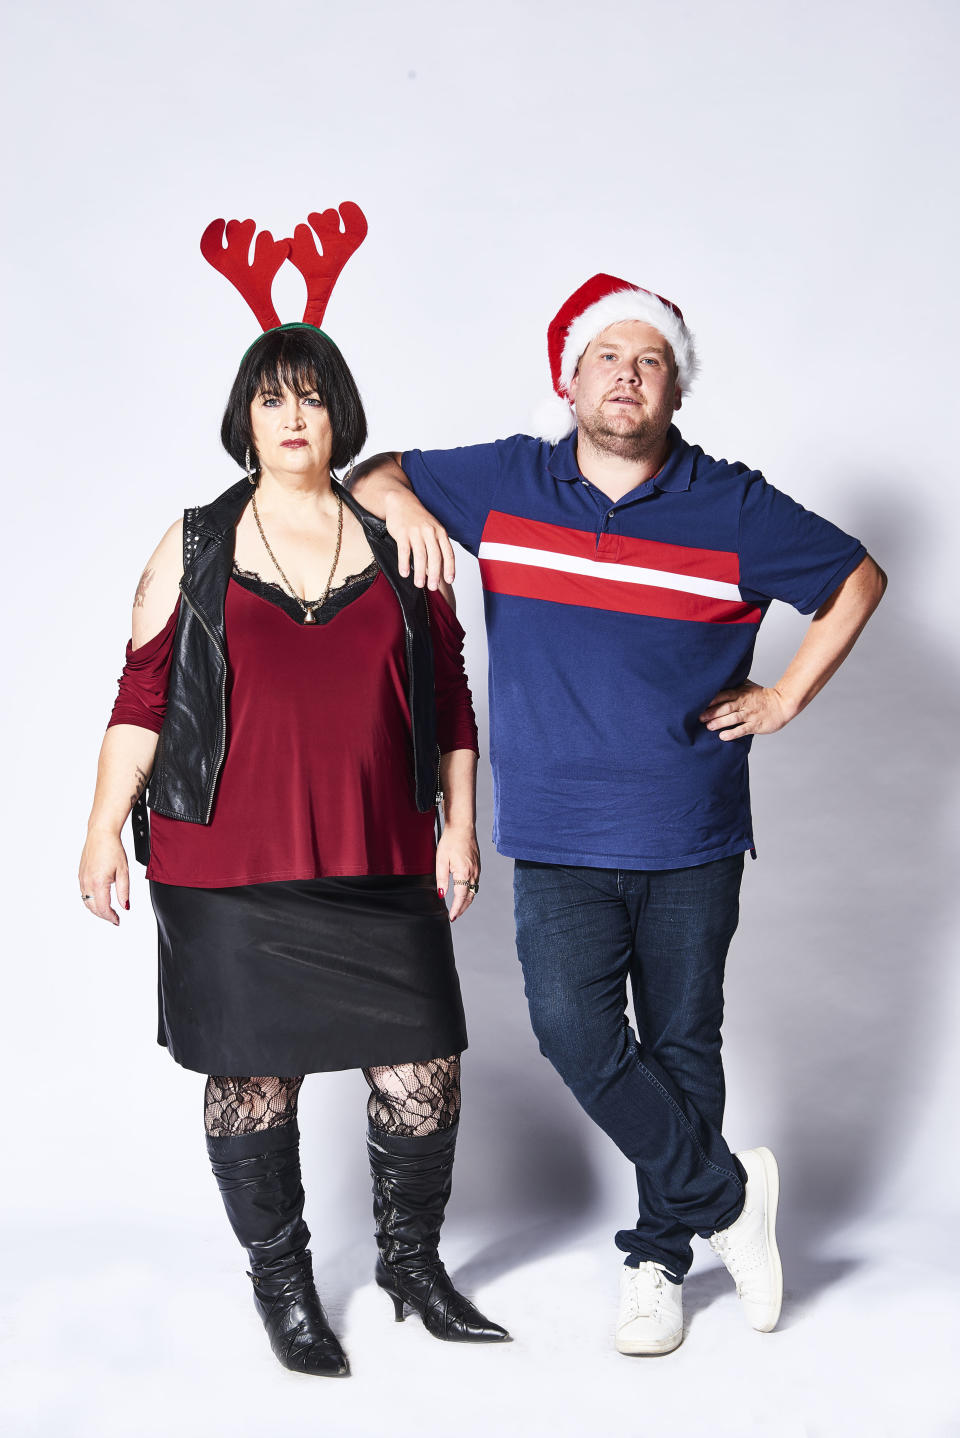 The Christmas special will air on Christmas Day on BBC One at 8.30pm. (BBC/GS TV Productions Ltd/Tom Jackson)